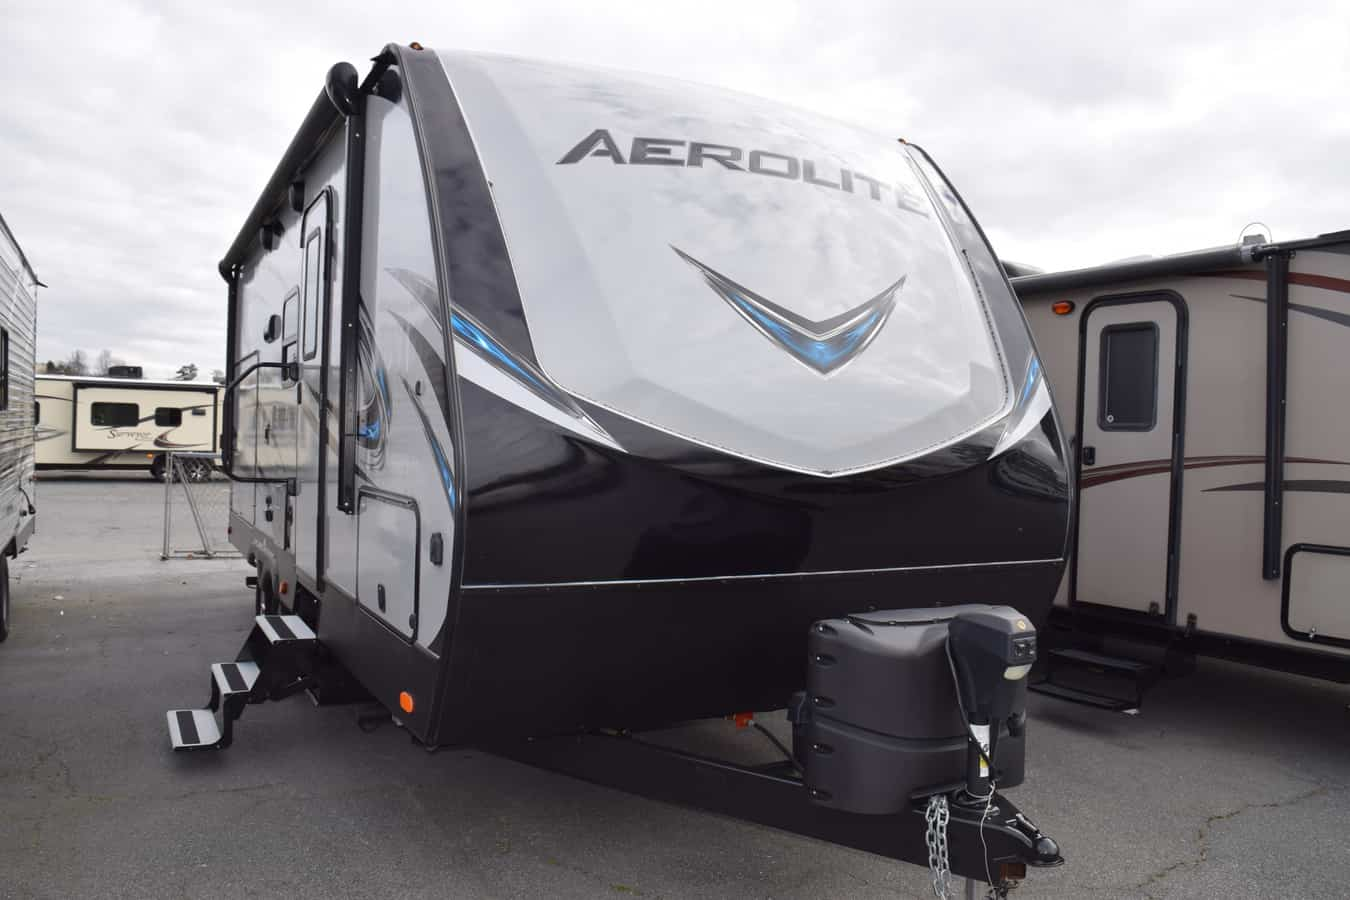 USED 2019 Dutchmen AEROLITE 2133RB - Three Way Campers